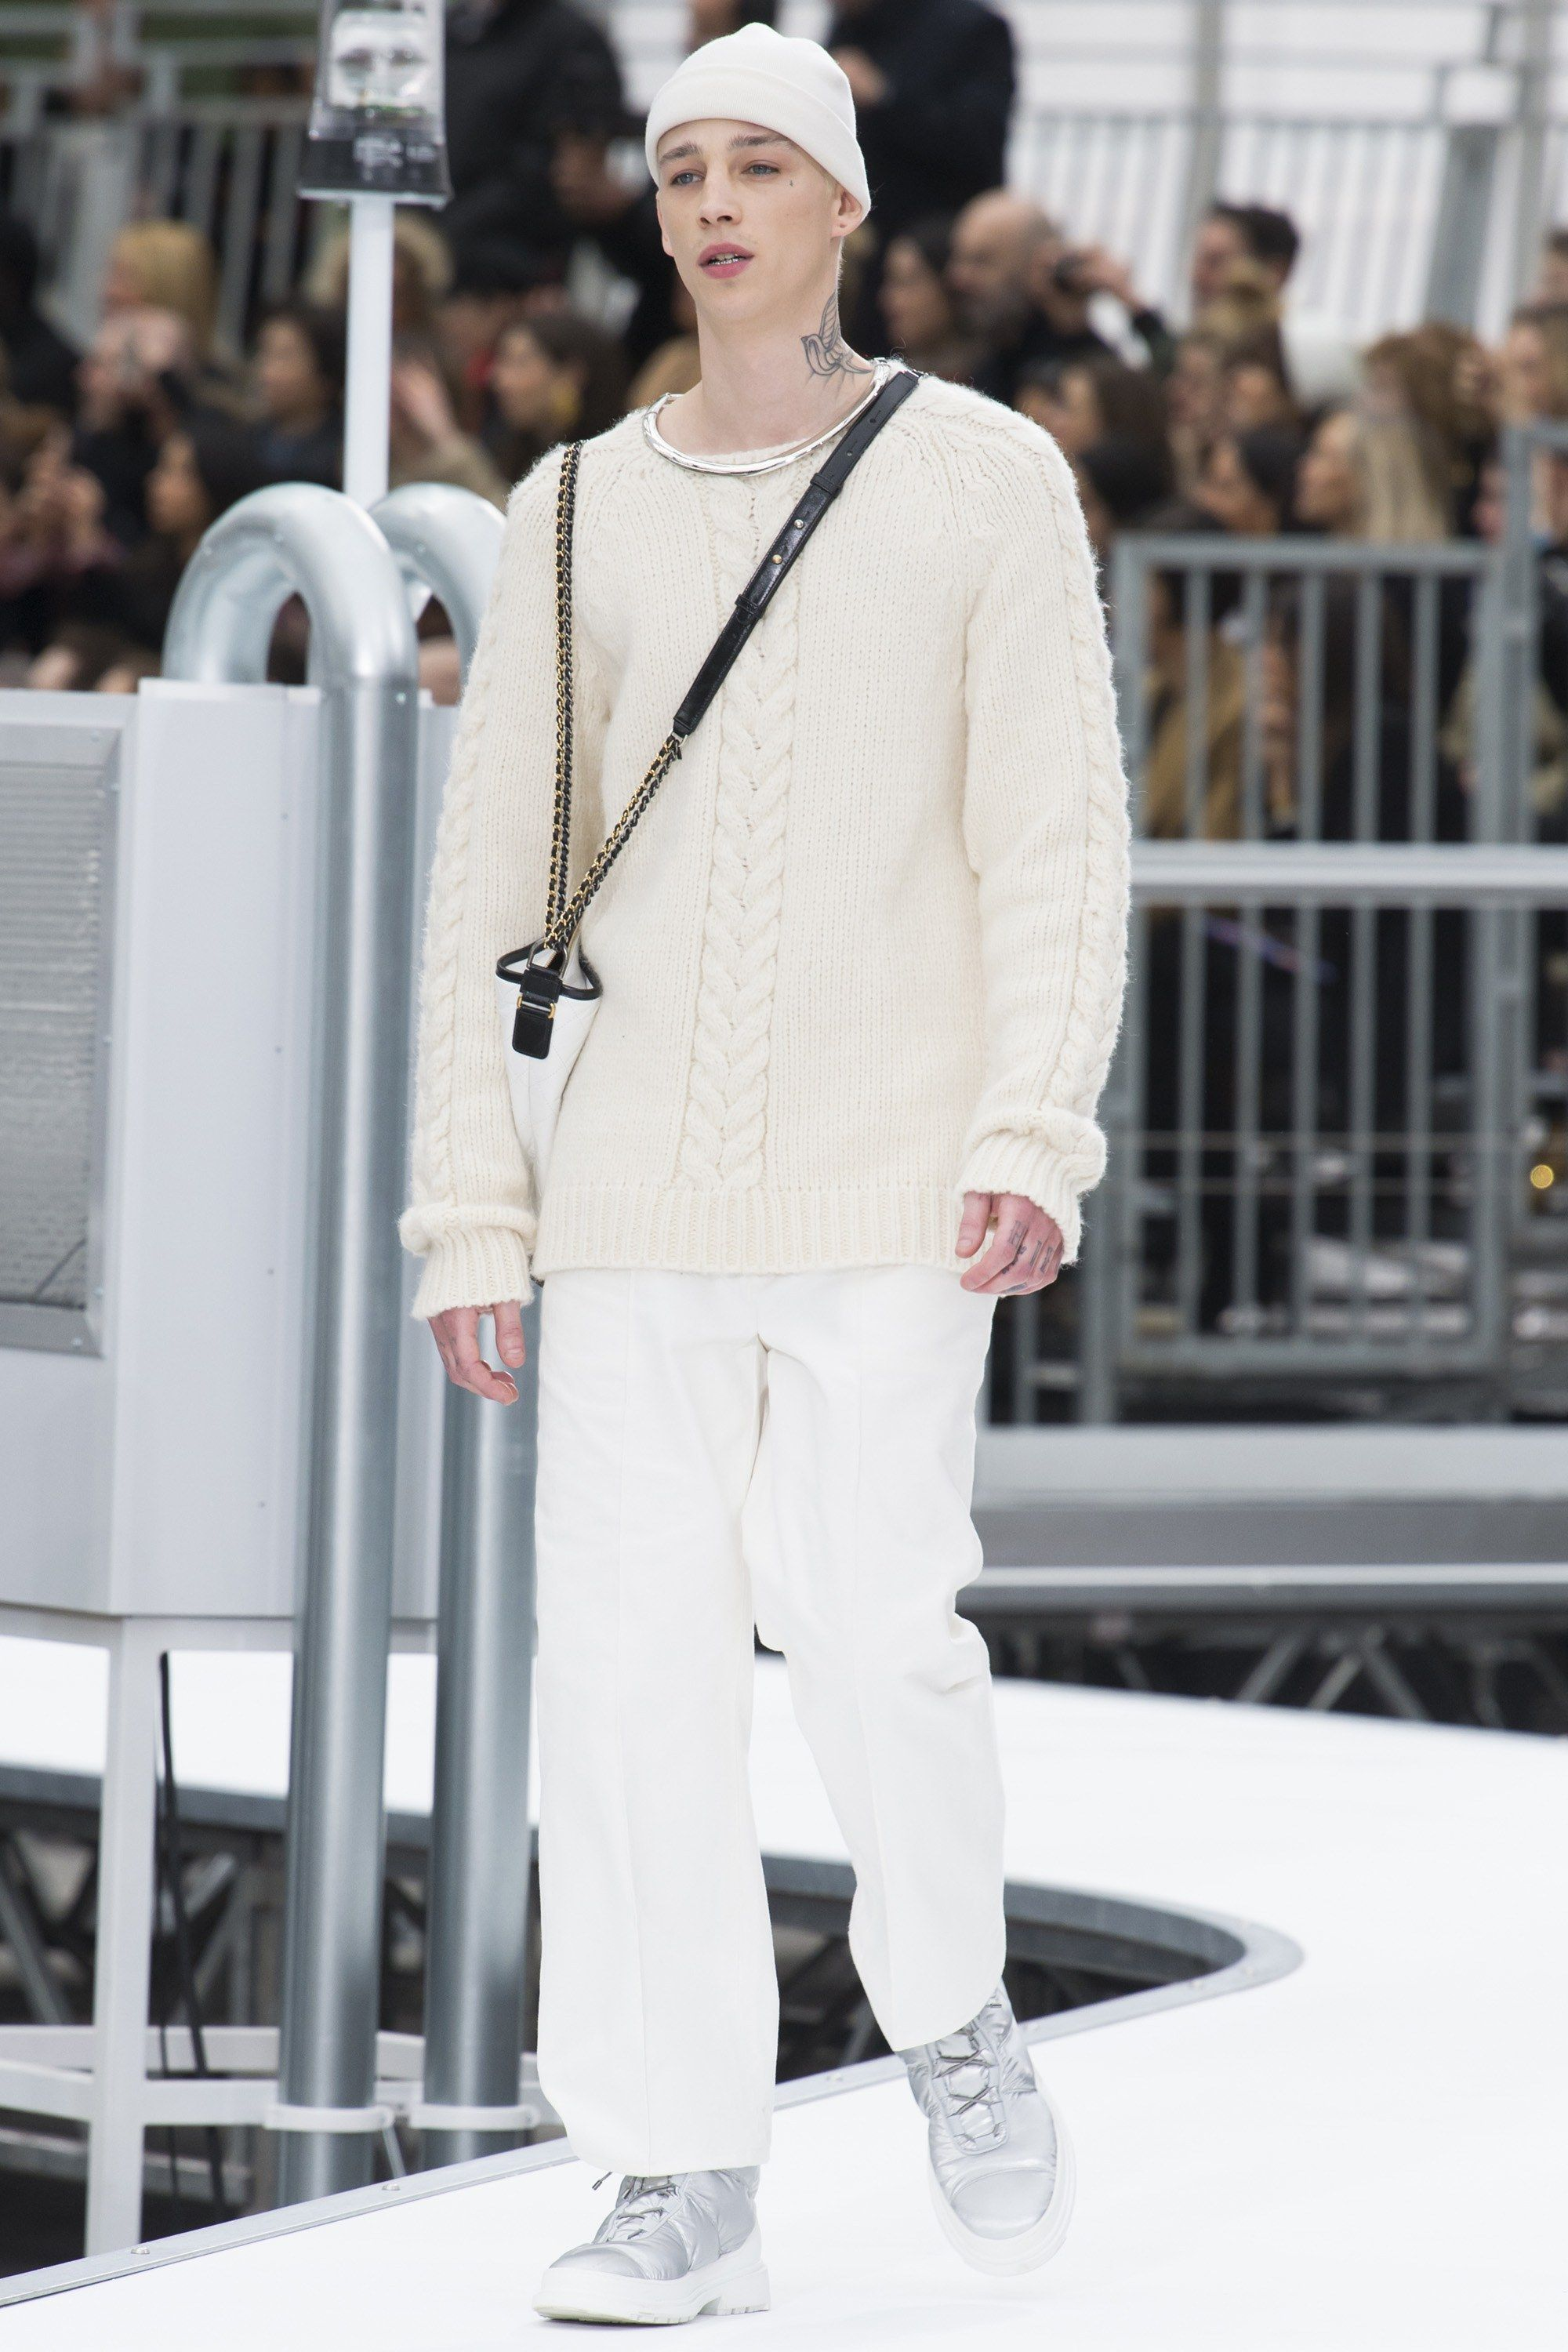 Image result for ash stymest modeling chanel